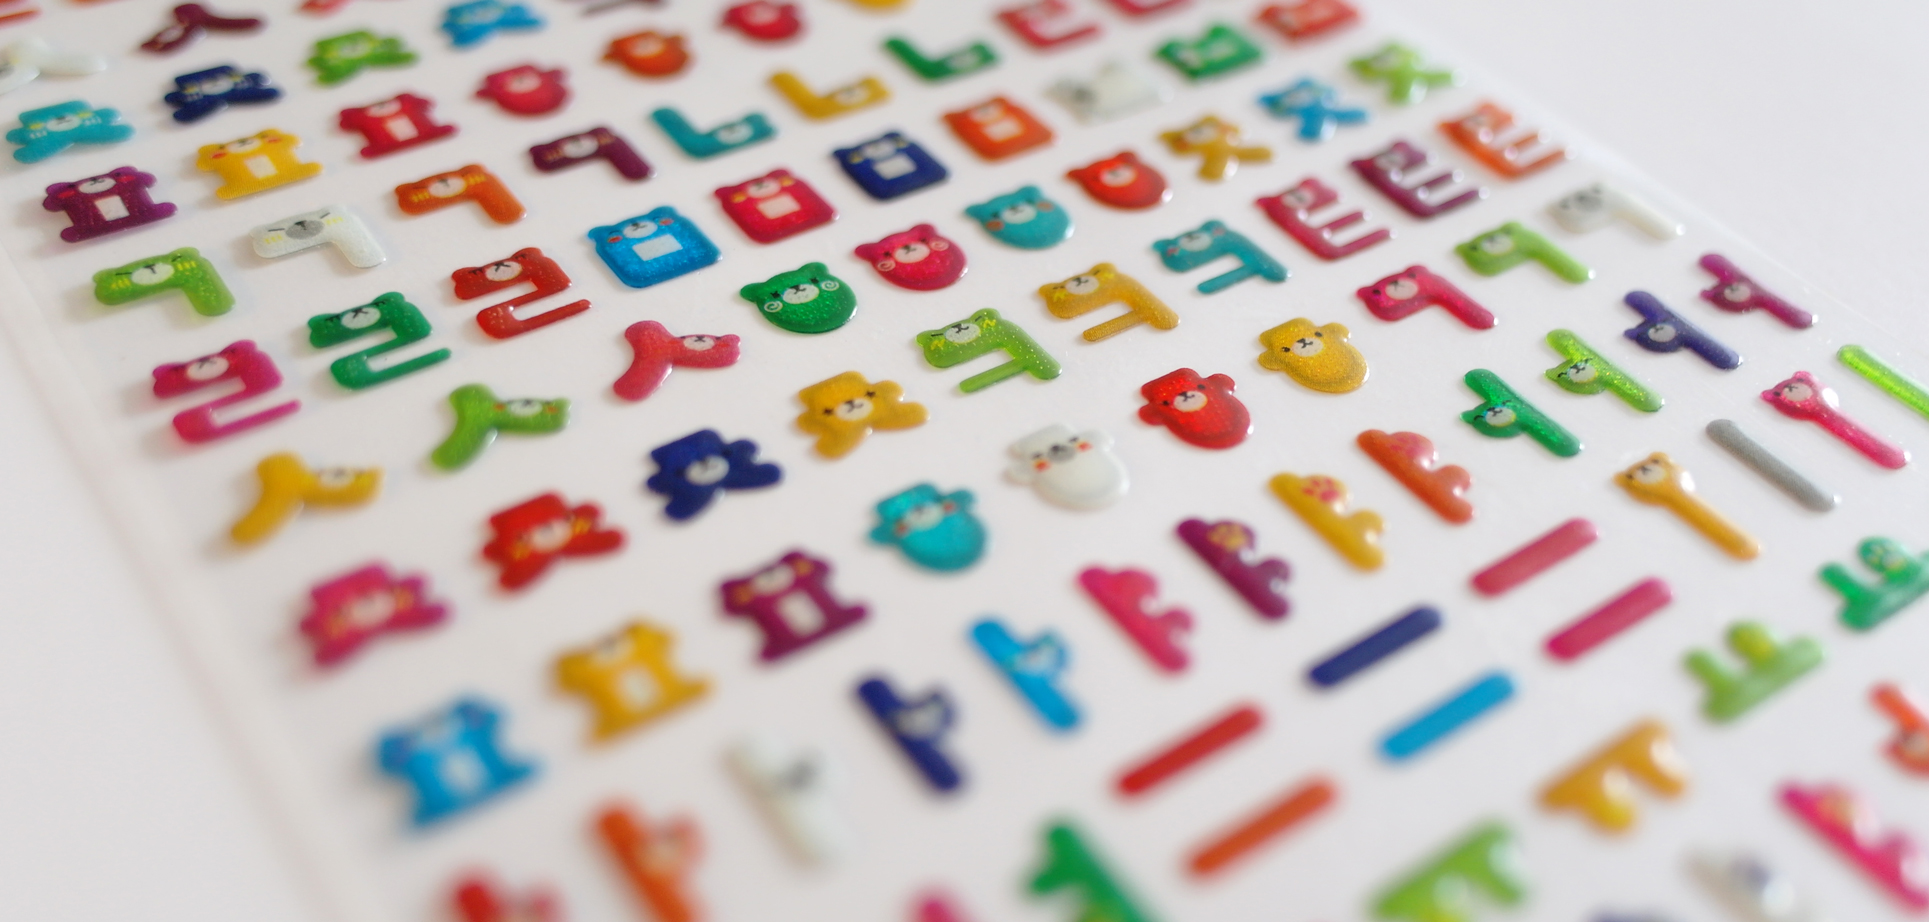 image regarding Printable Keyboard Stickers named Typing Hangul section 1 Korean alphabet keyboard stickers